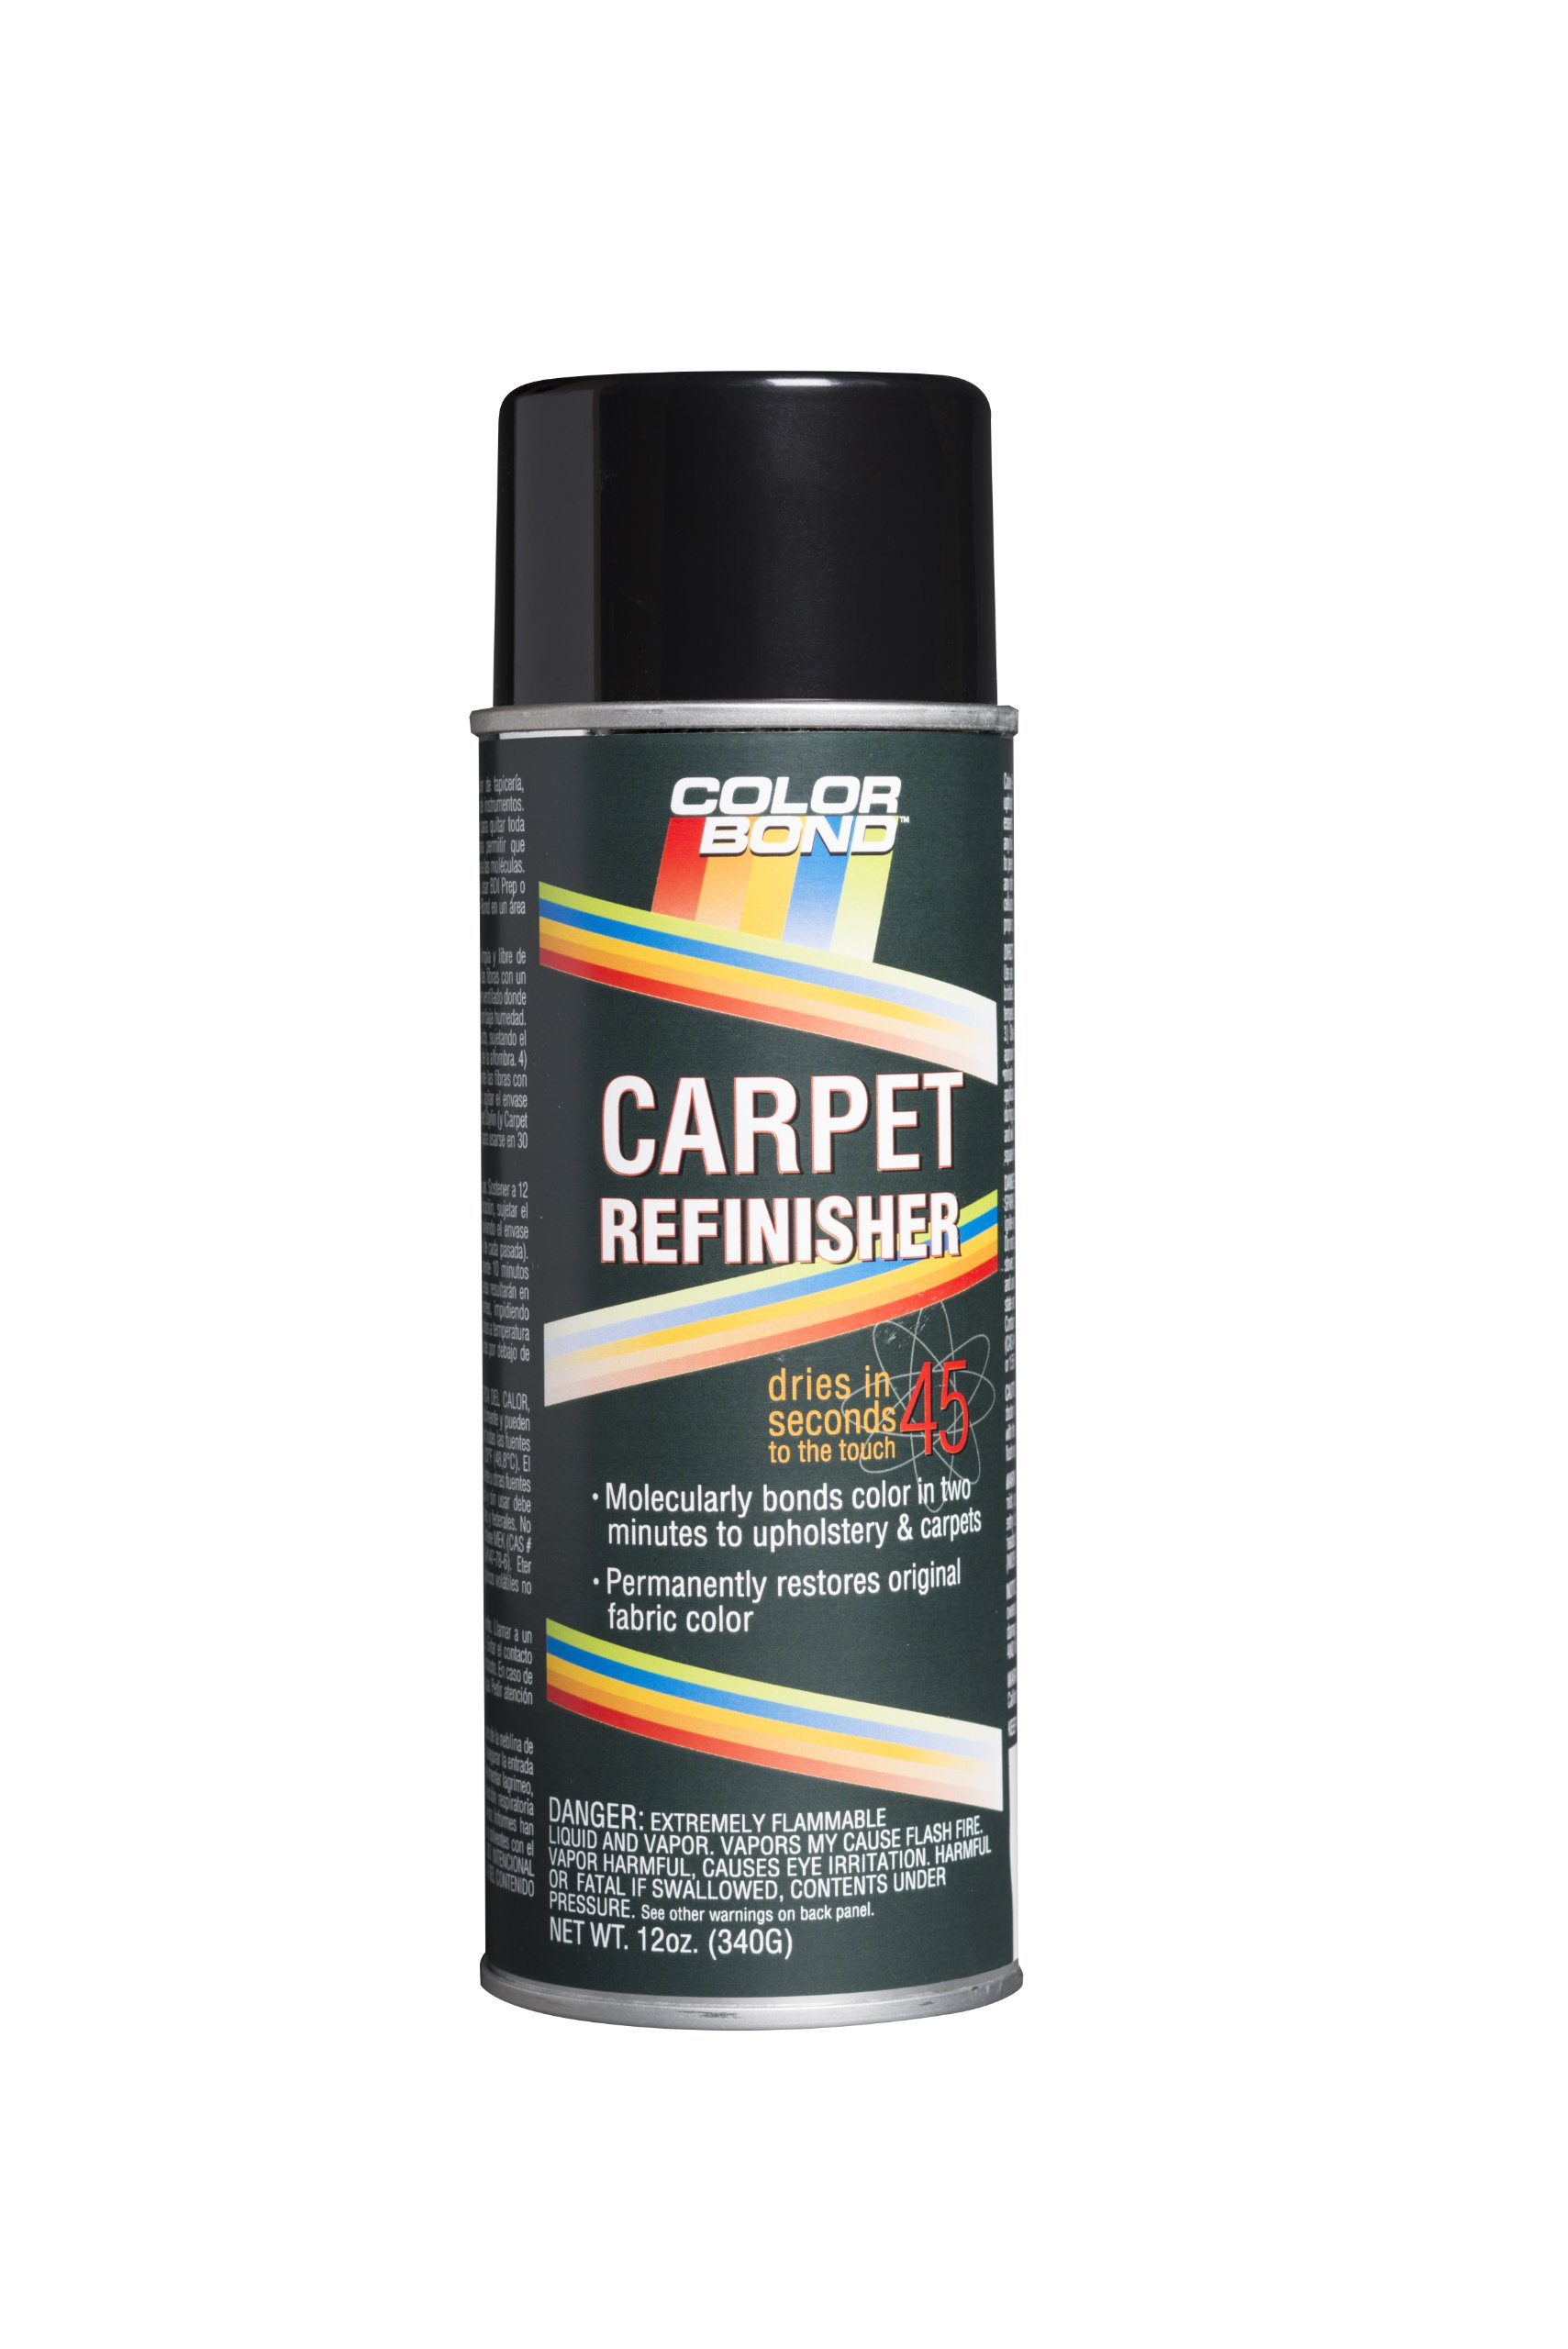 ColorBond (274) Dk Gray Carpet Refinisher - 12 oz. by Colorbond